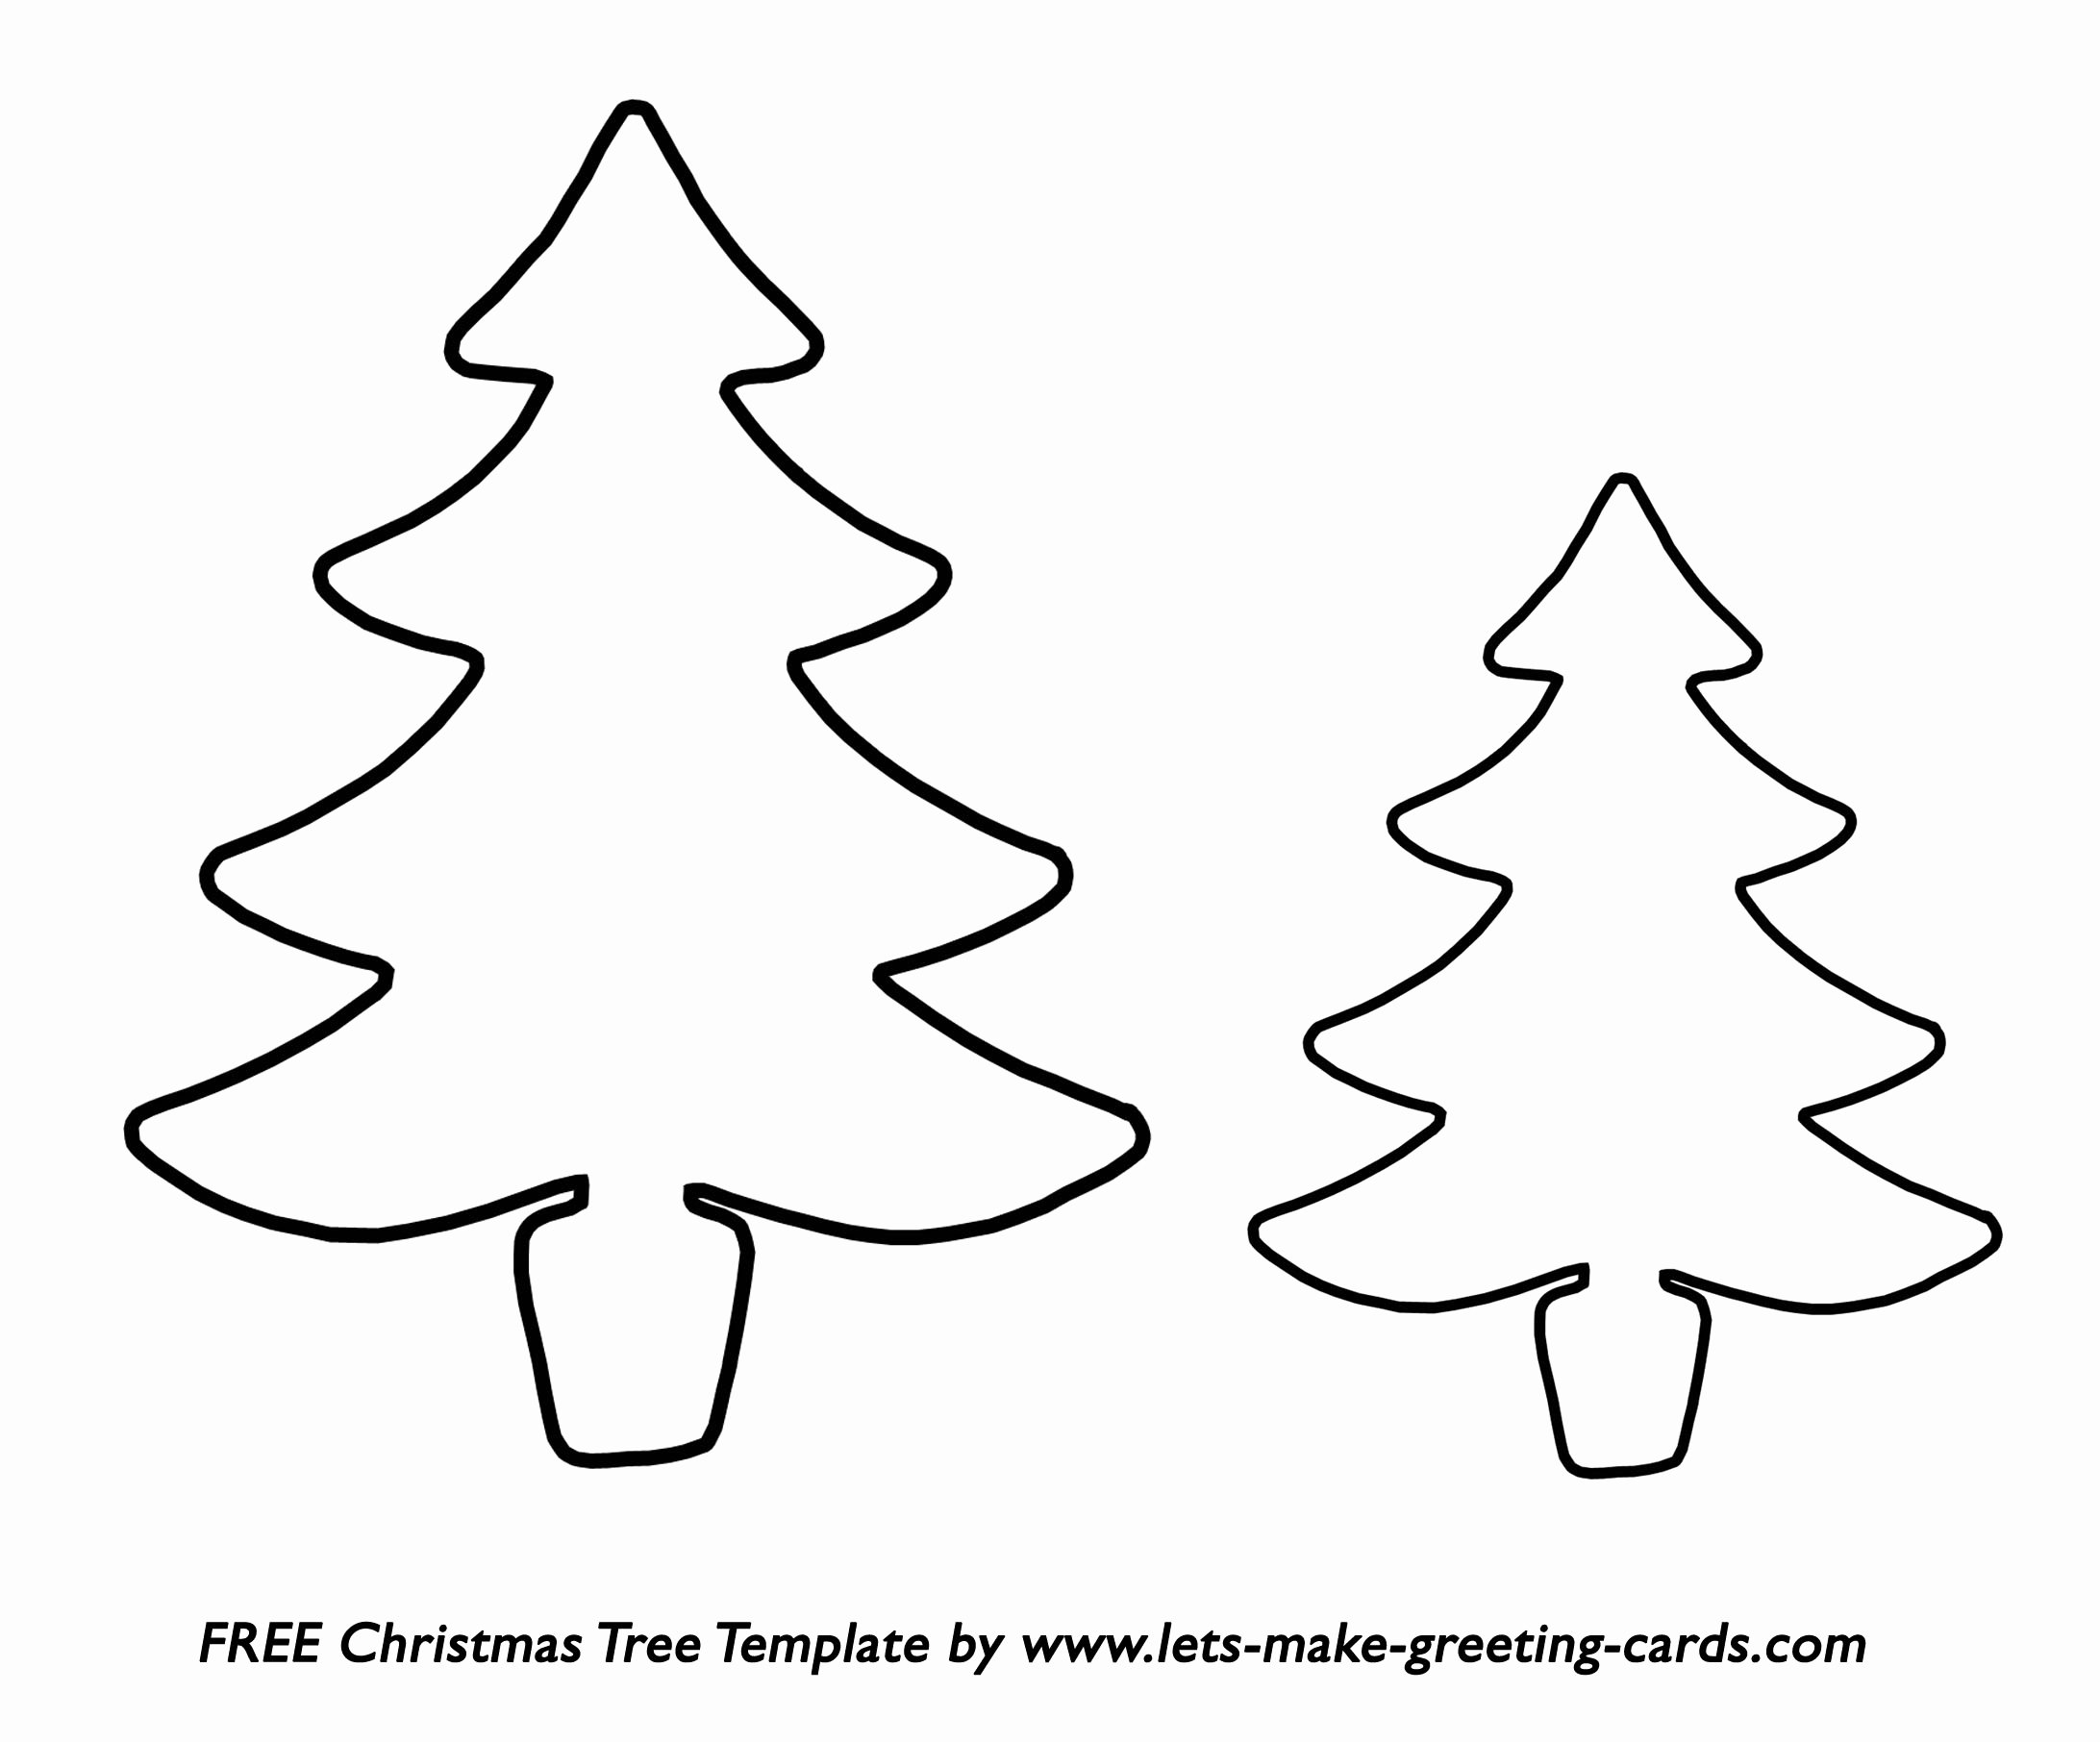 Free Christmas Tree Template Free Christmas Card Ideas